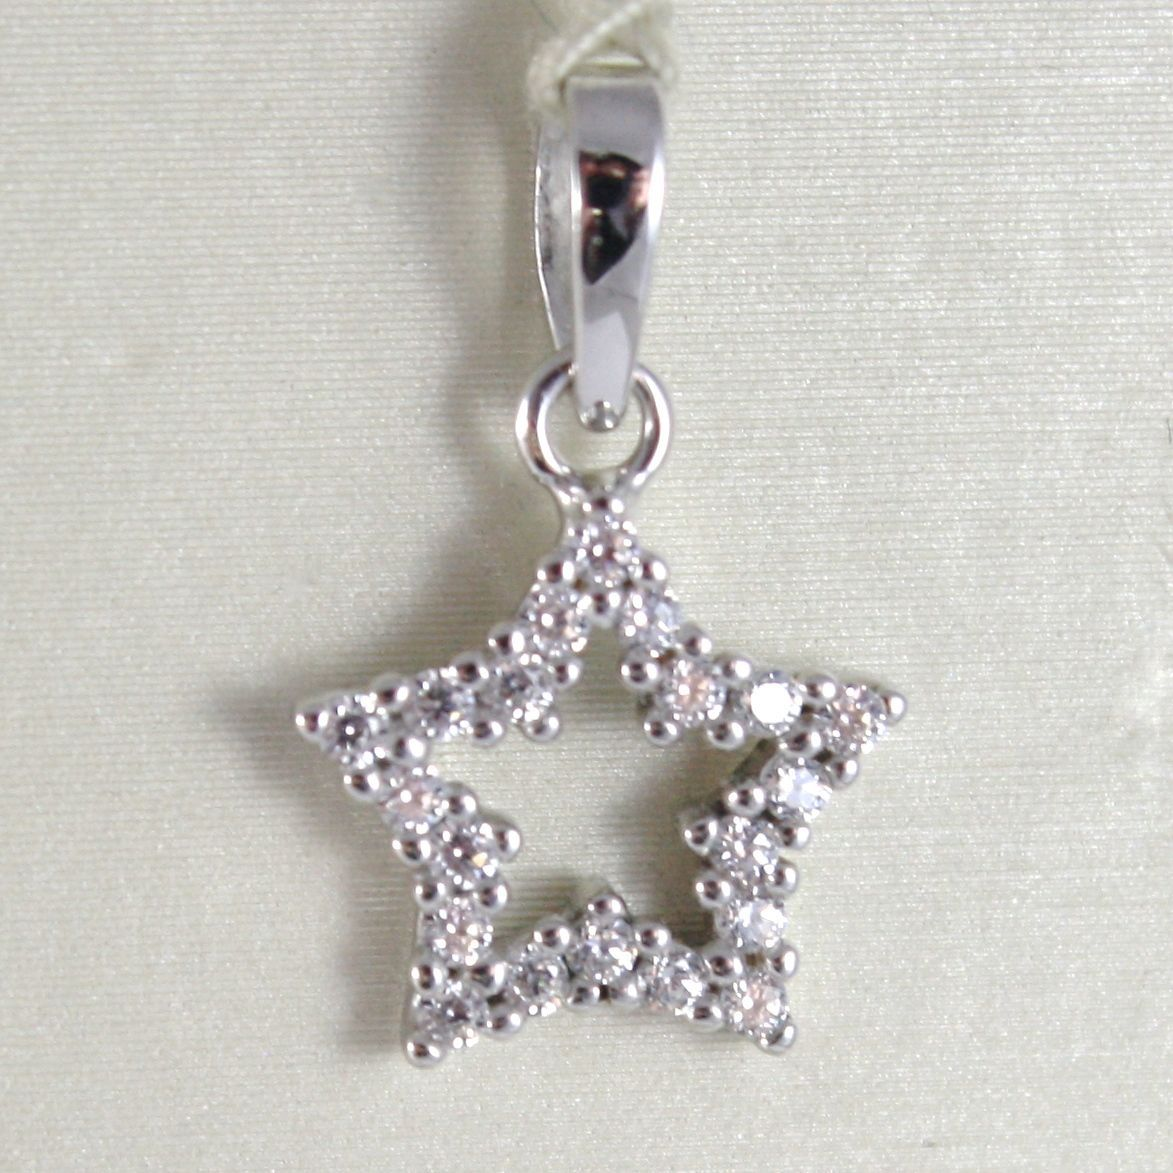 WHITE GOLD PENDANT 750 18K, STELLA, LONG 1.7 CM, WITH ZIRCON, MADE IN ITALY